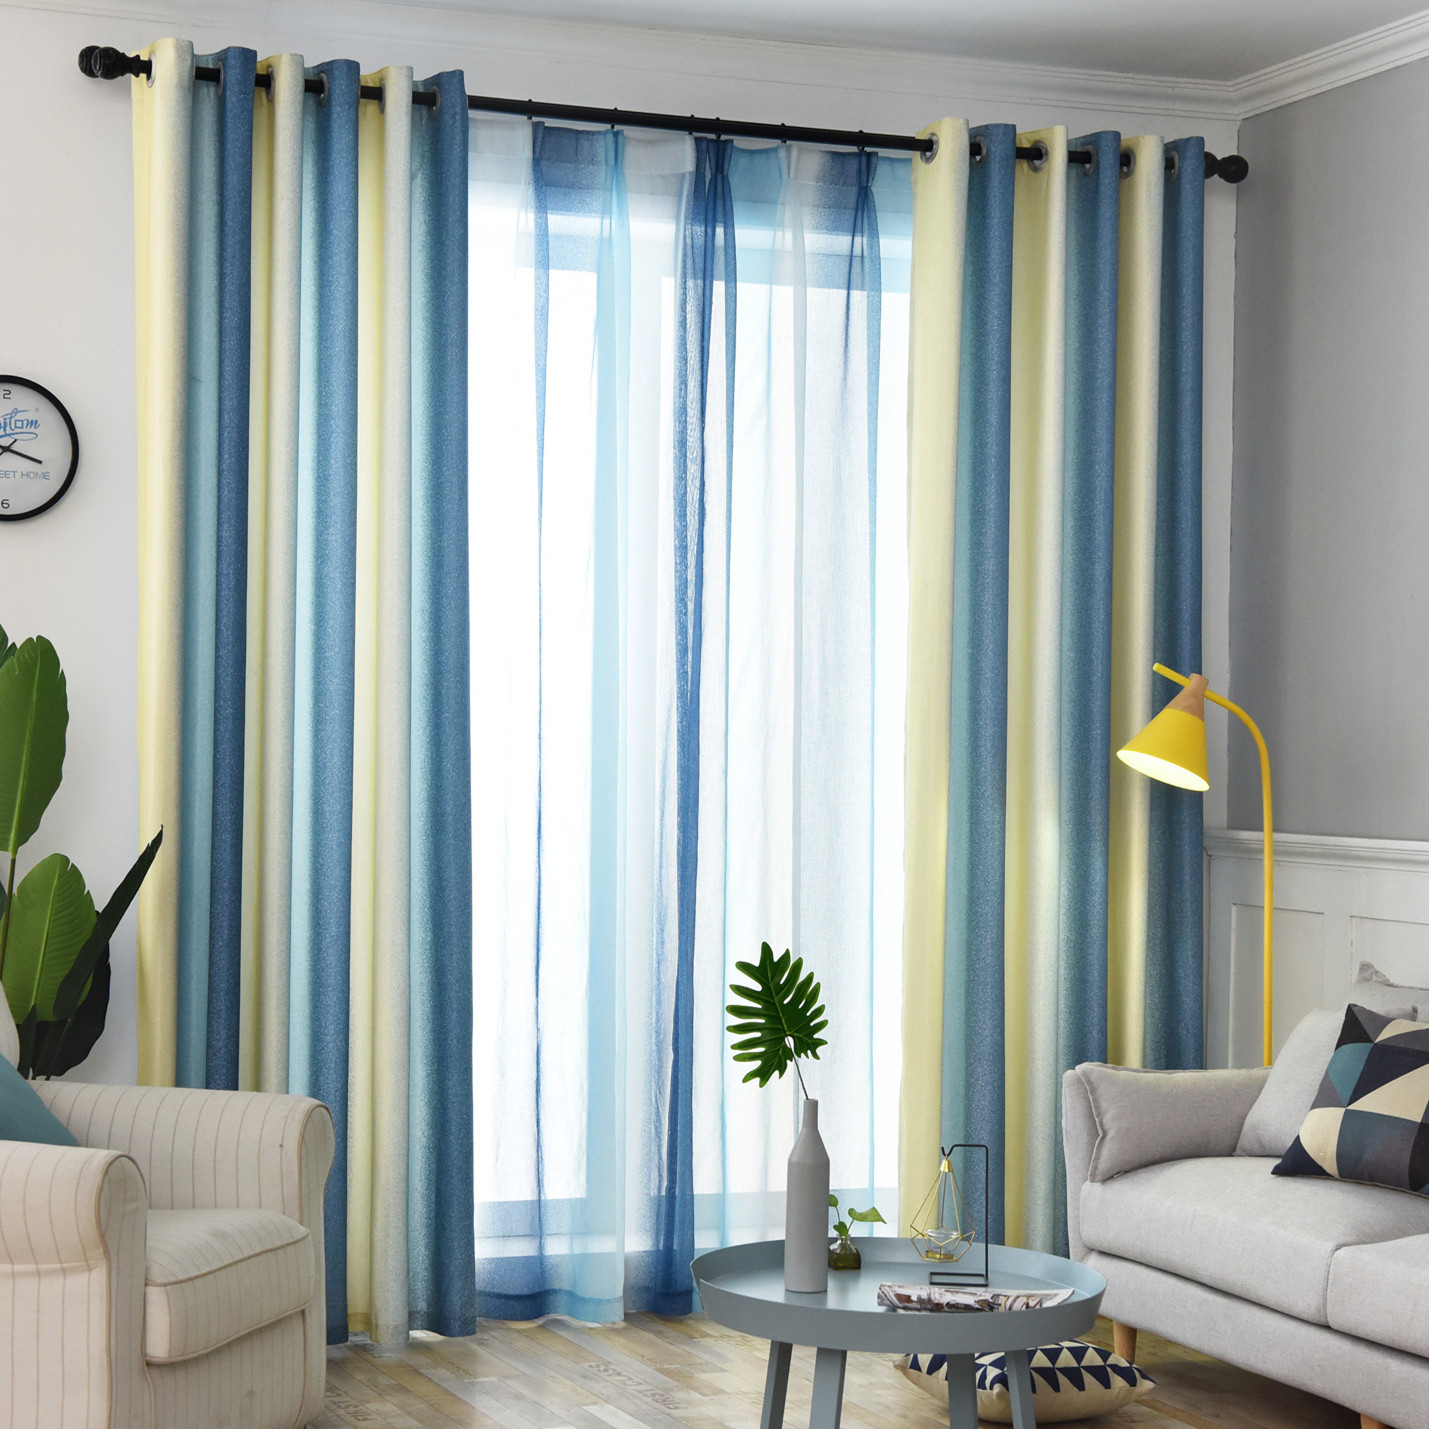 Simple Modern Curtains For Living Room Shade Imitation Linen Curtins For Bedroom Nordic Style Gradient Striped  Curtains Fabric